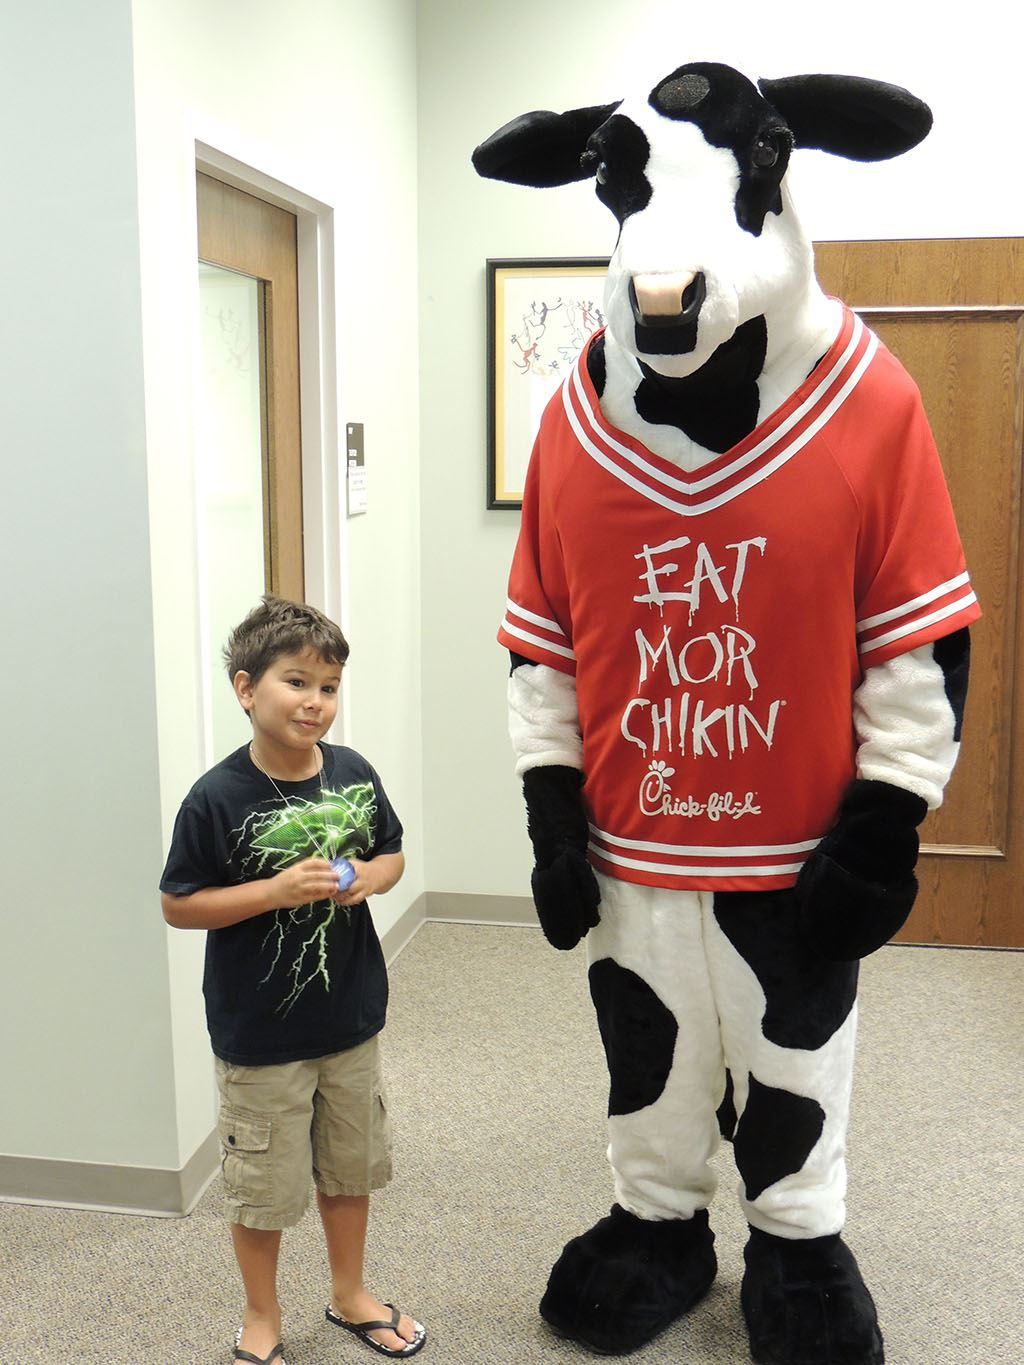 Cow posing with boy